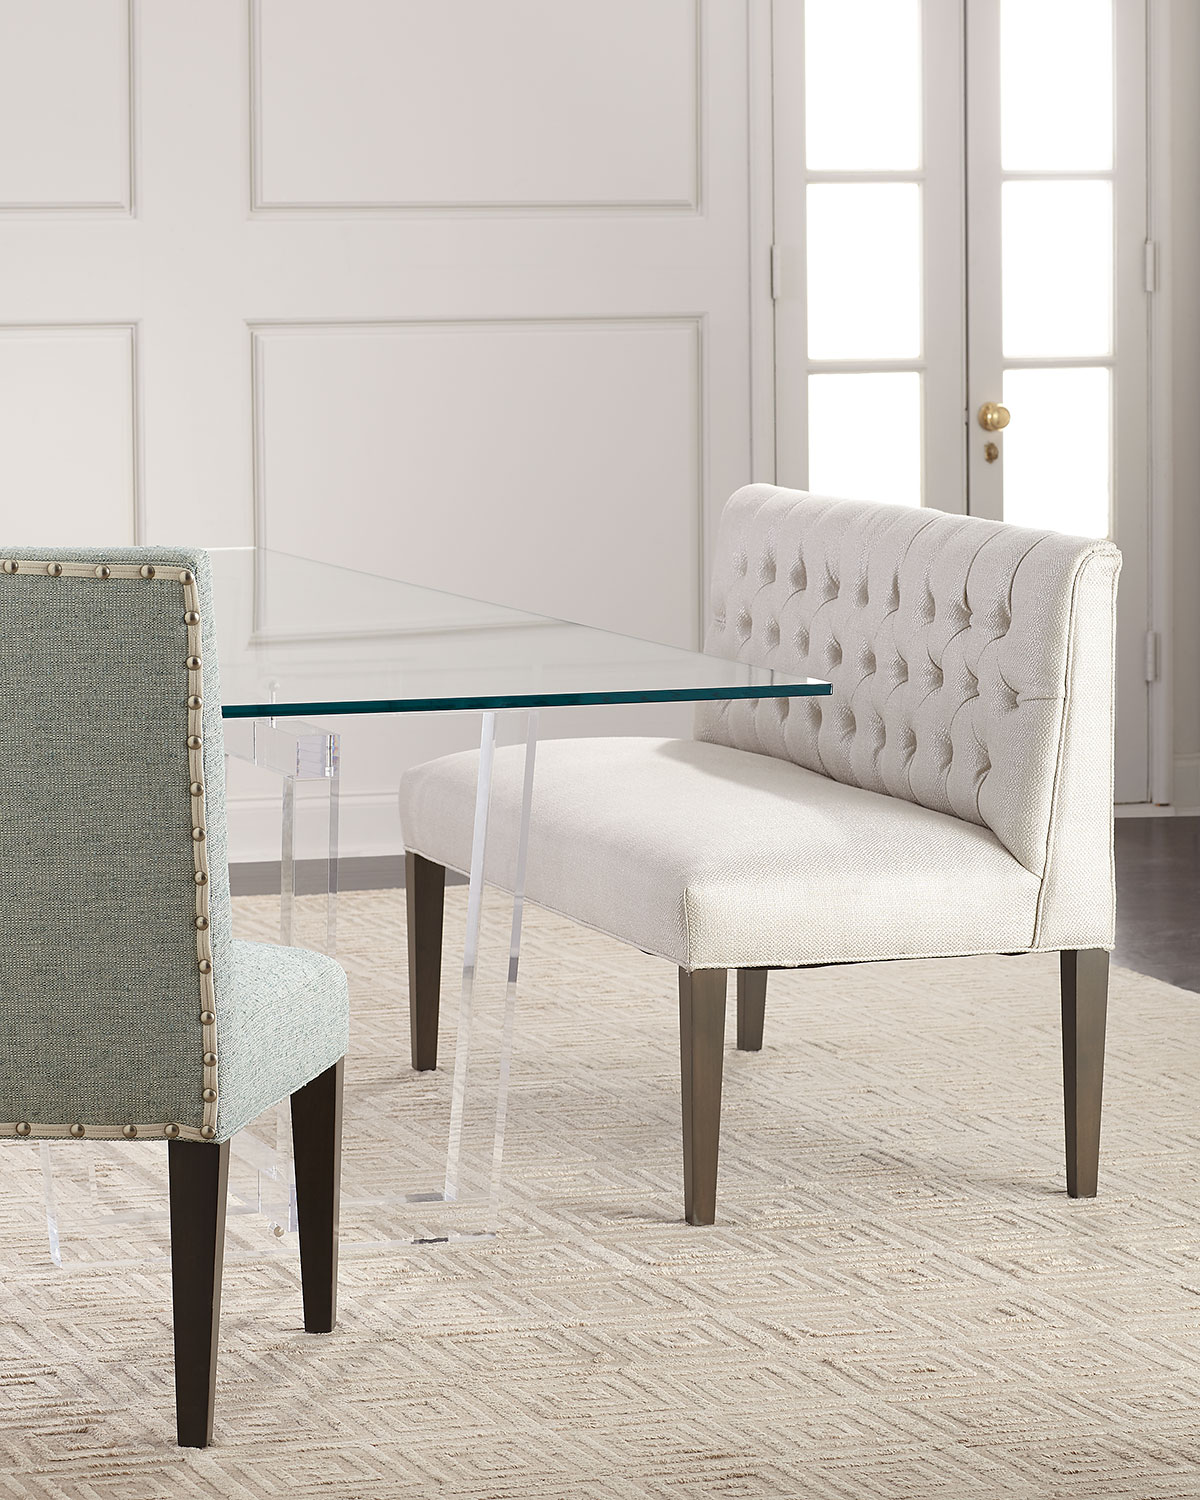 Neiman Marcus Benches Bedroom Furniture For Home Buy Best Home